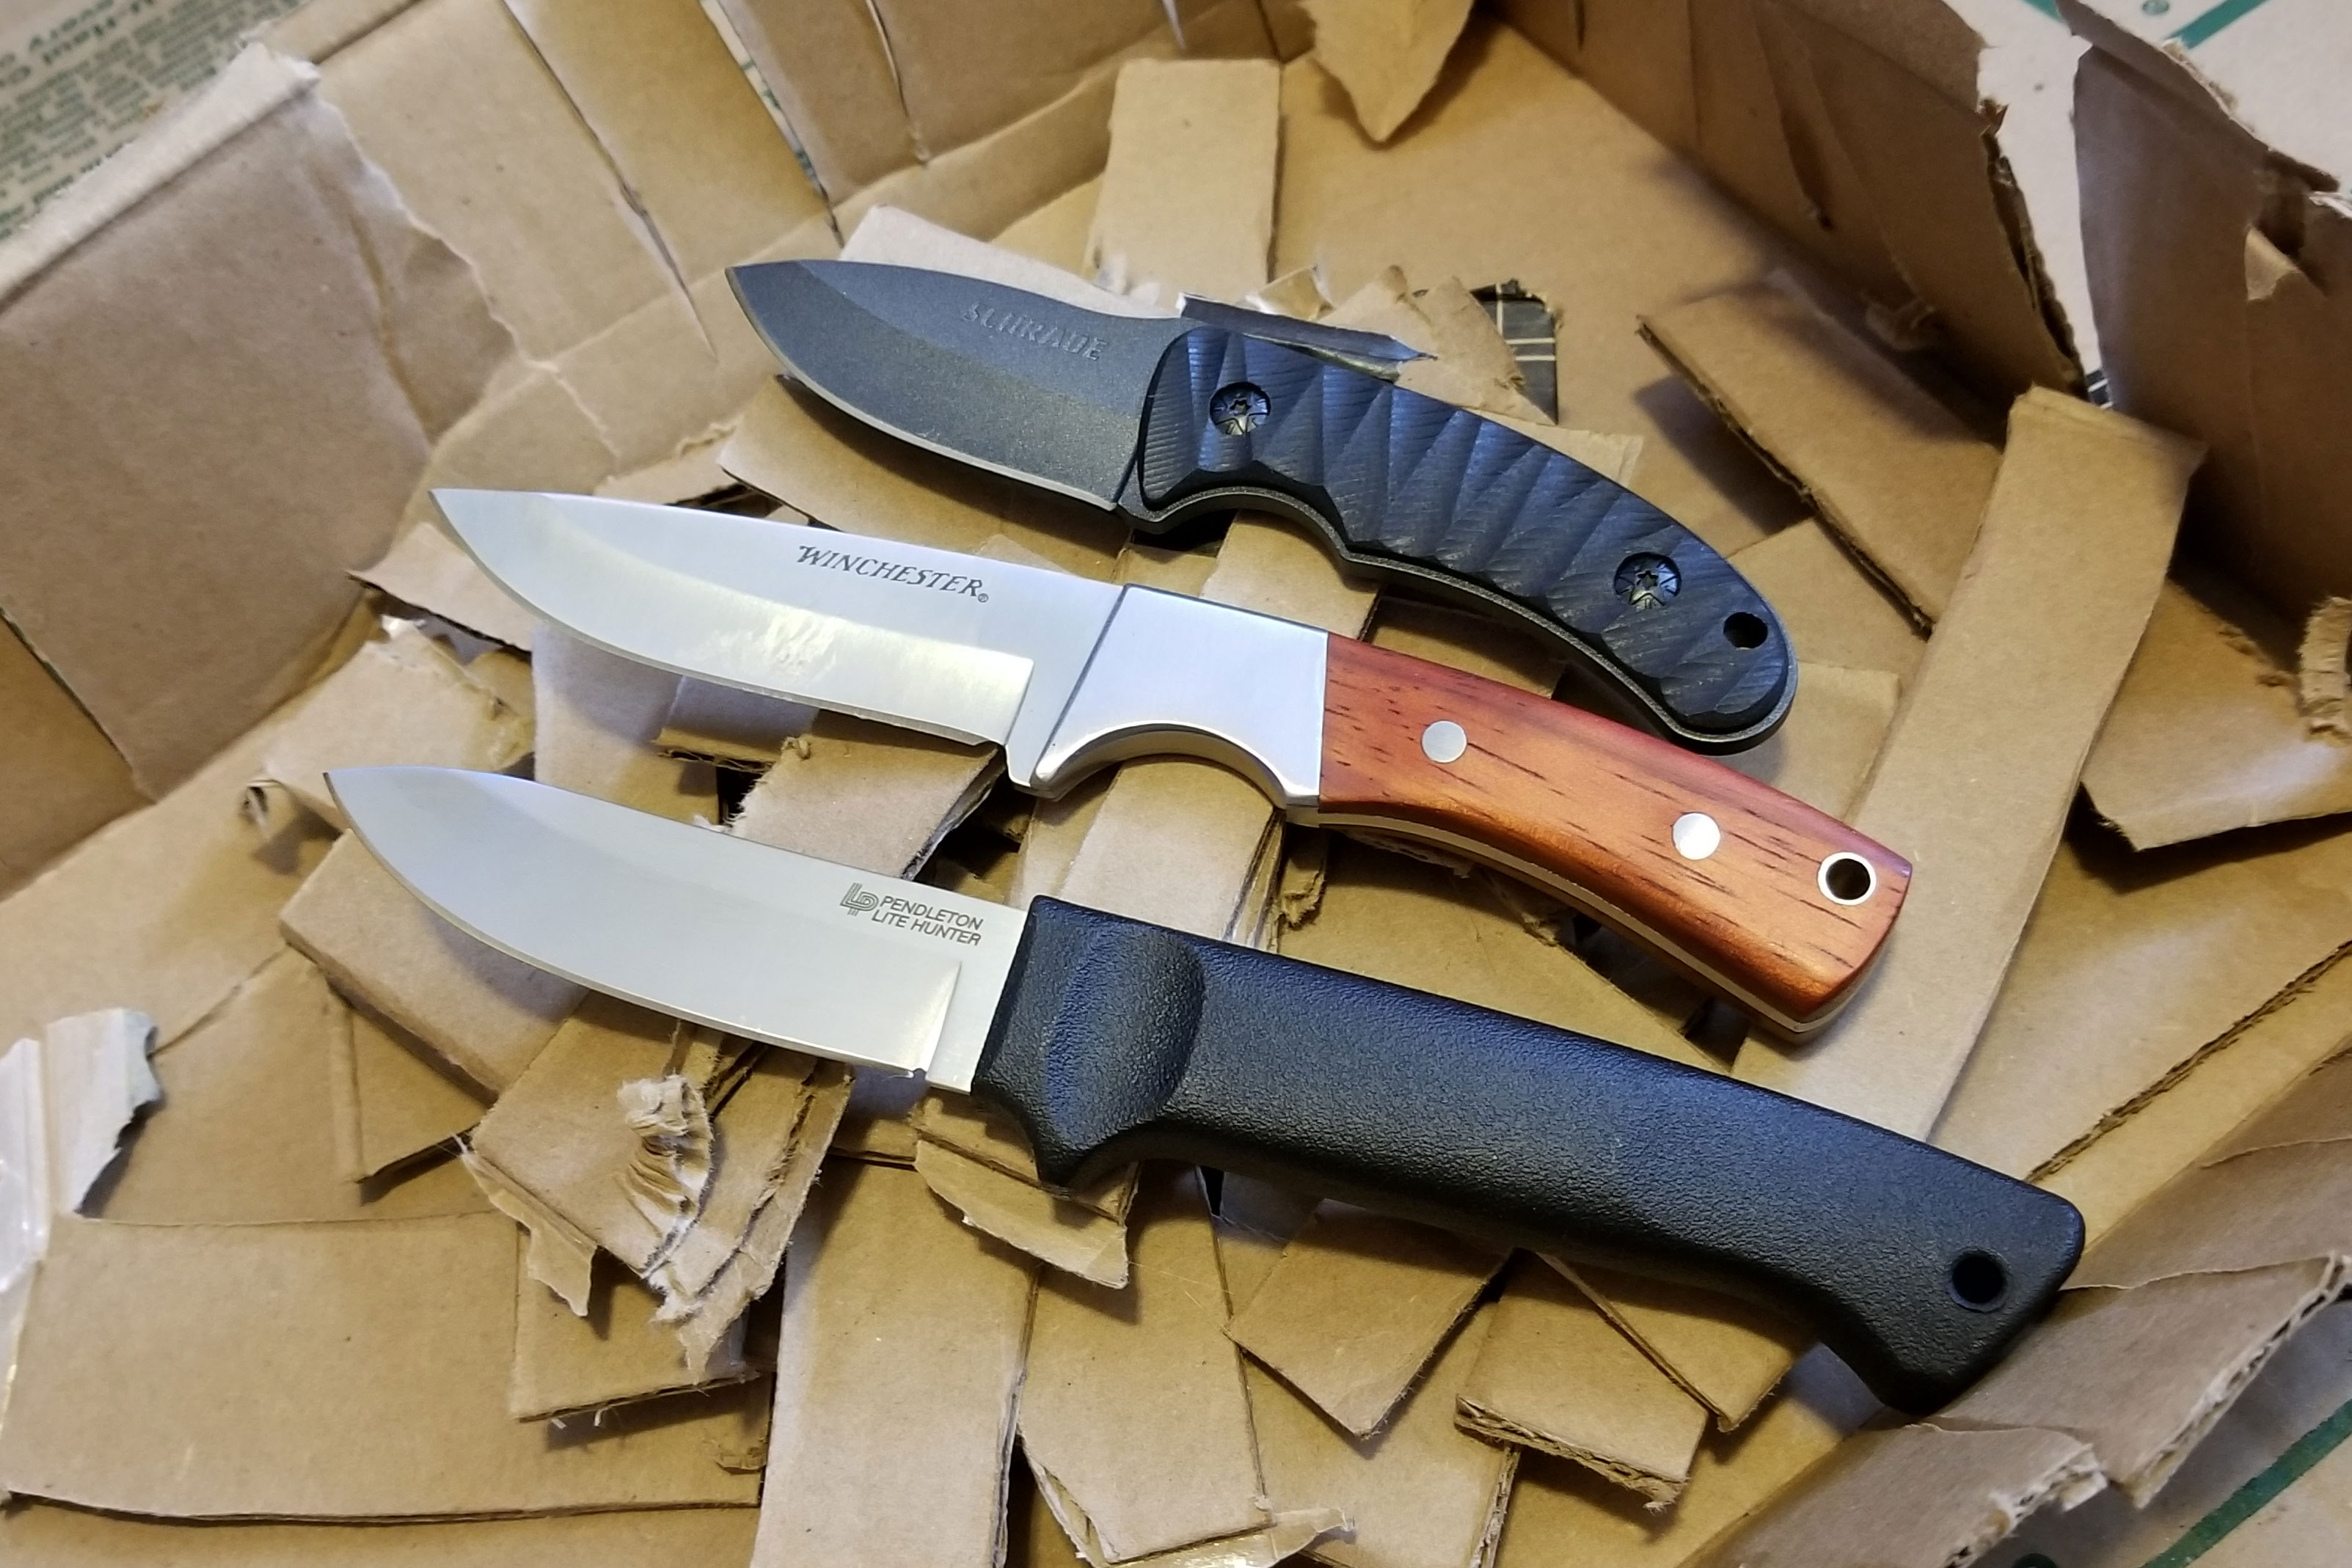 Cardboard test: Under $20 fixed-blade knives